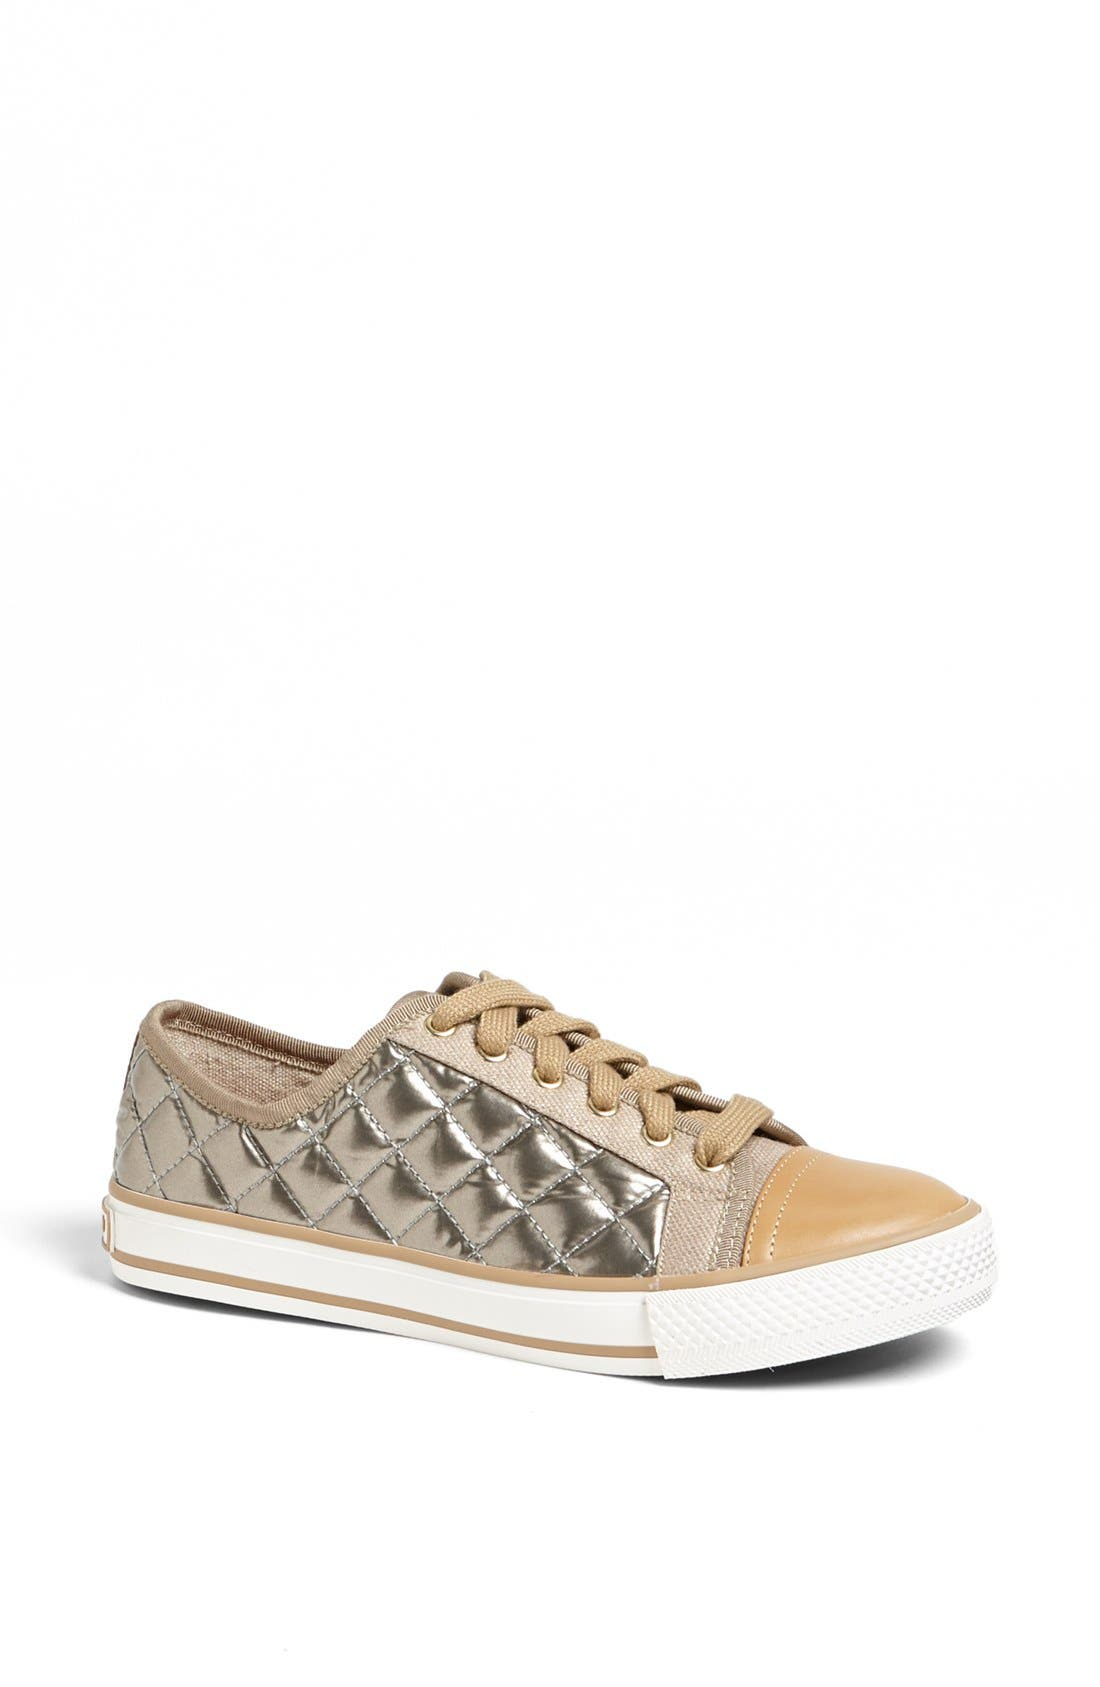 Main Image - Tory Burch 'Caspe' Quilted Metallic Leather Sneaker